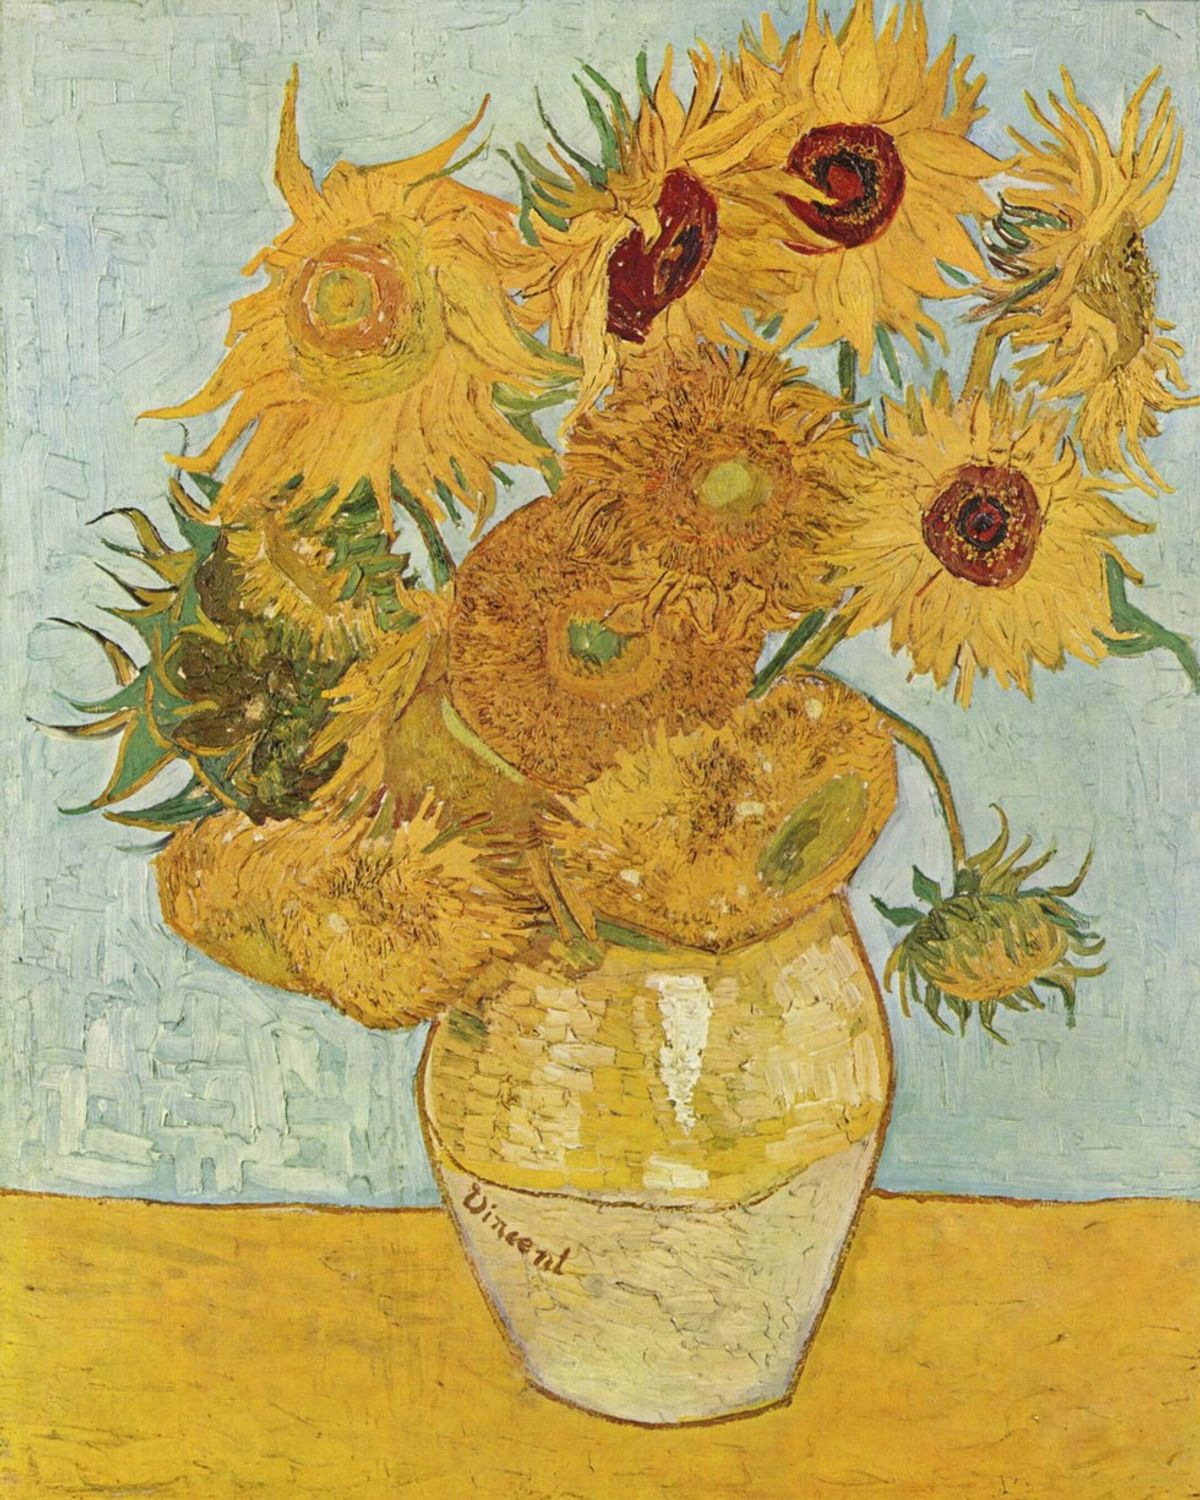 What Can We Learn About Depression From Van Gogh?